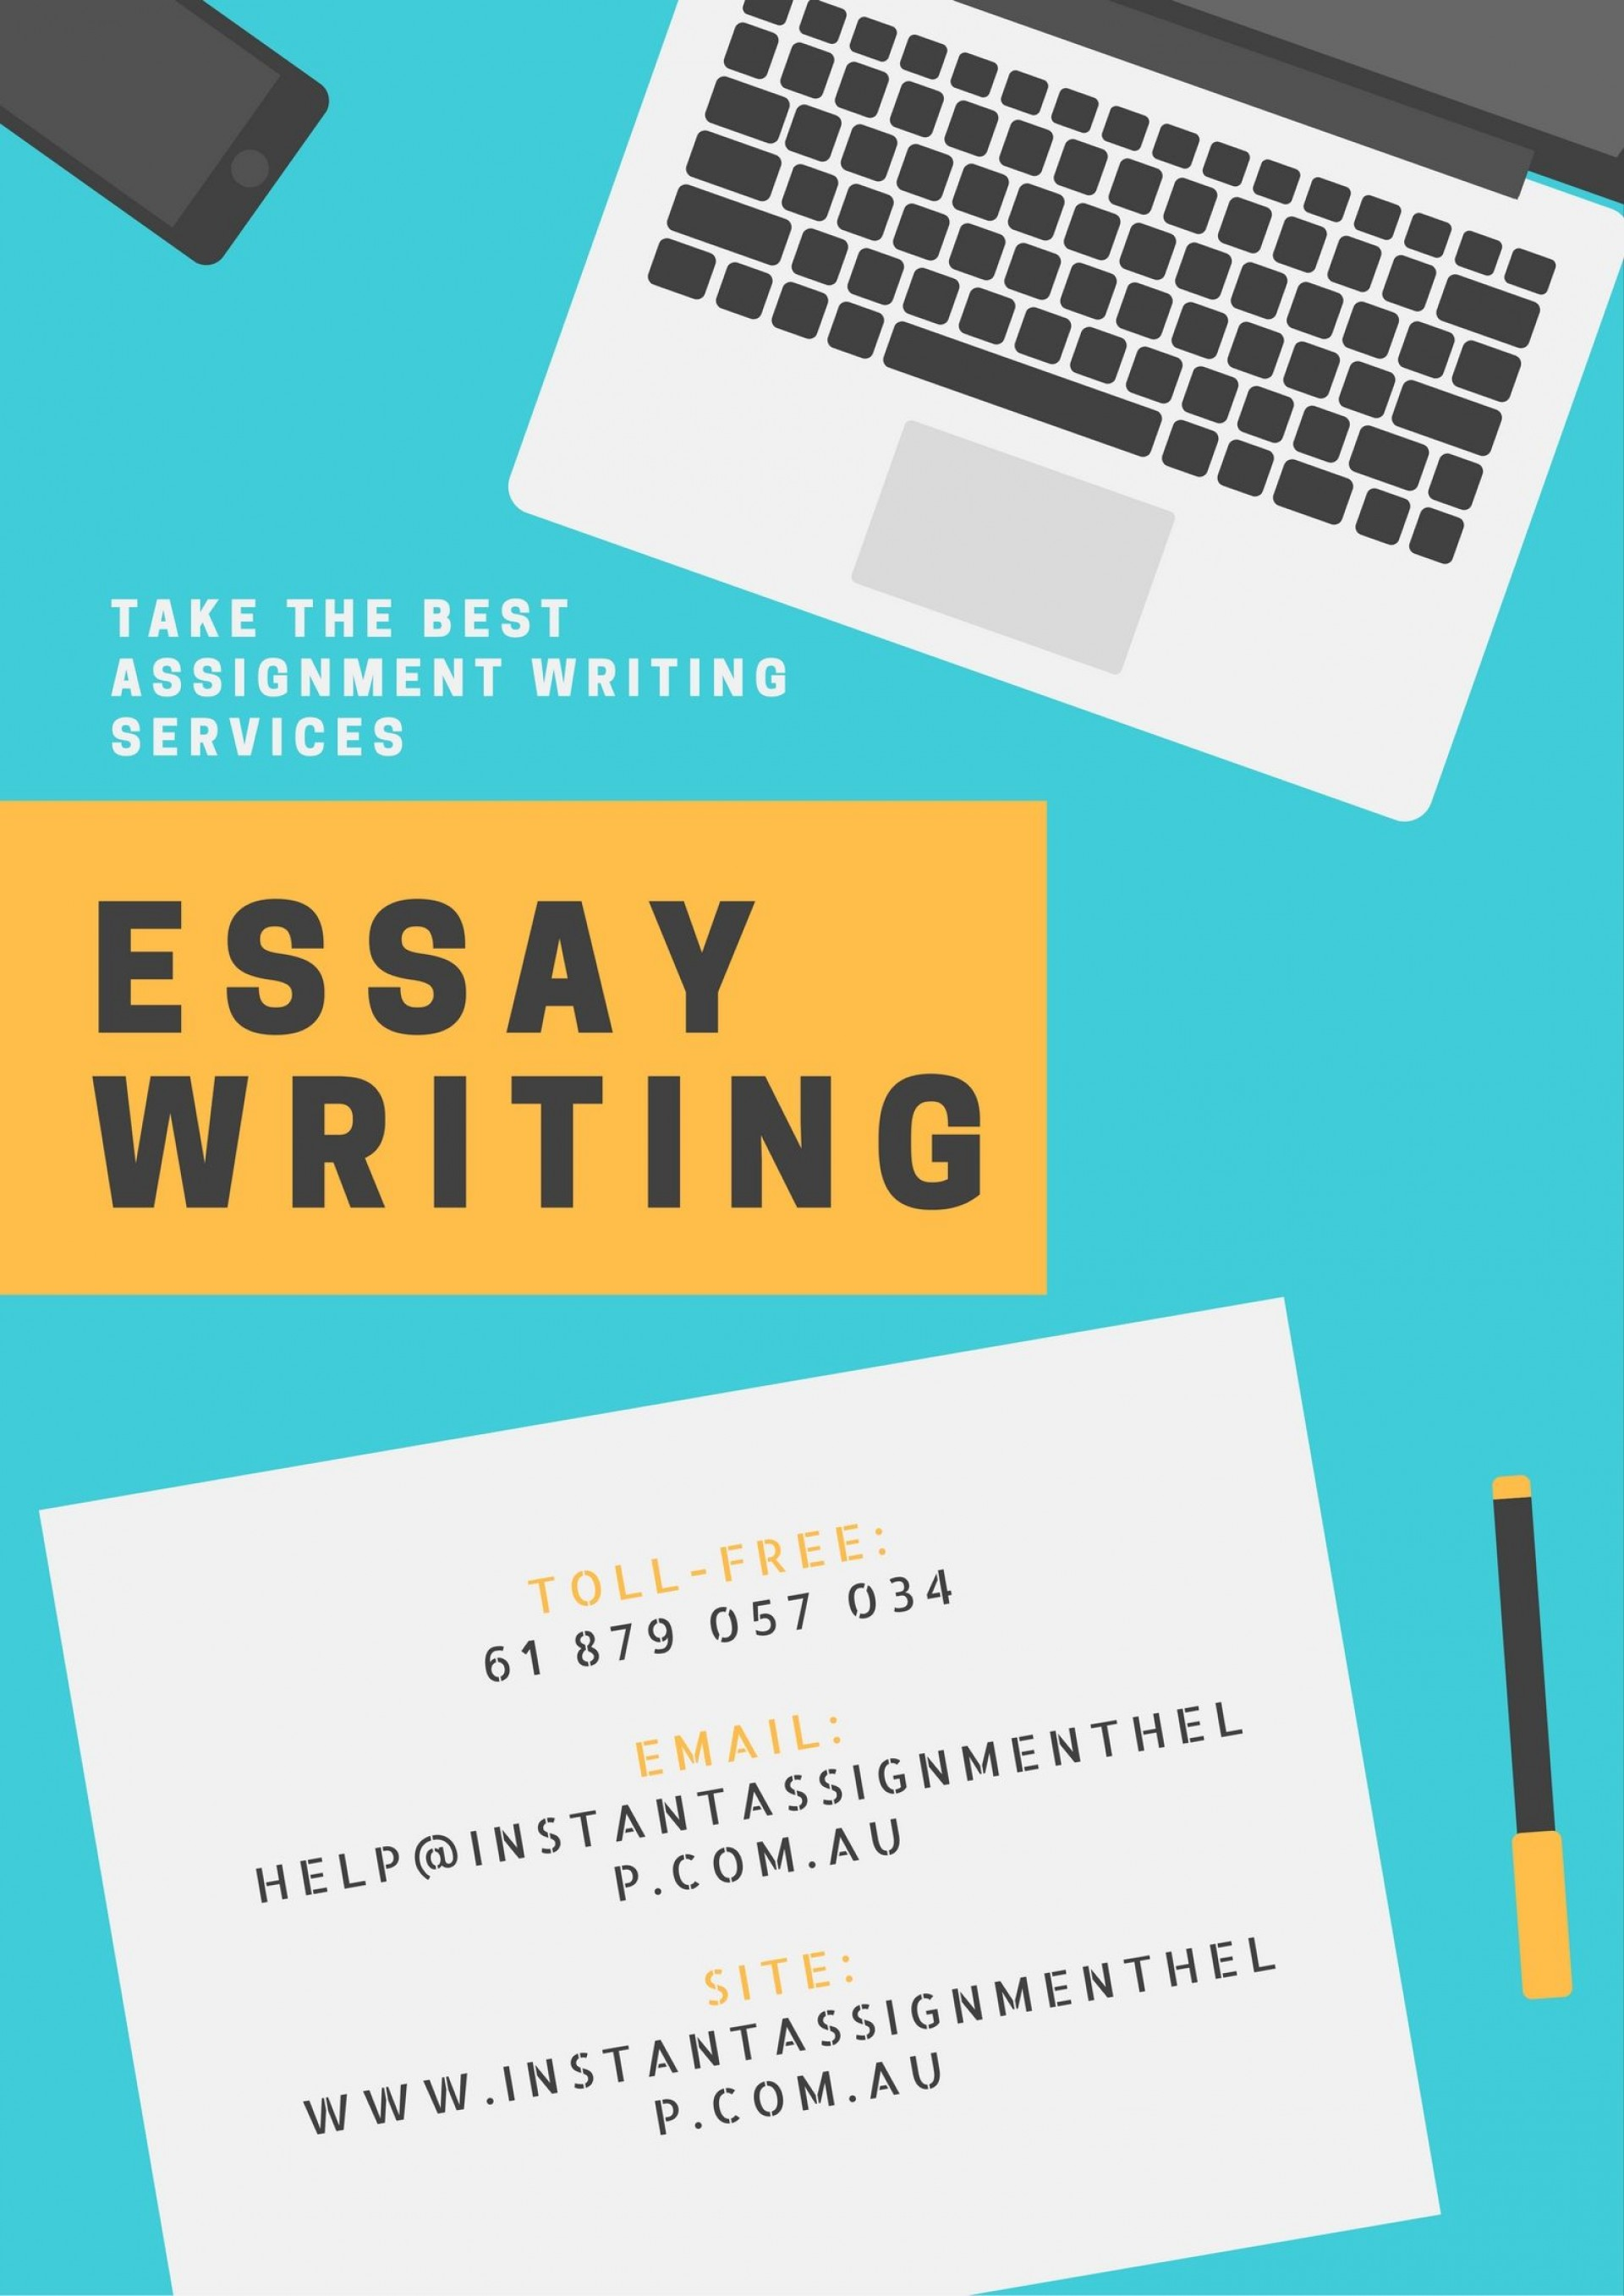 007 Essay Example Writing Help Unusual Online Service Uk Free 1920